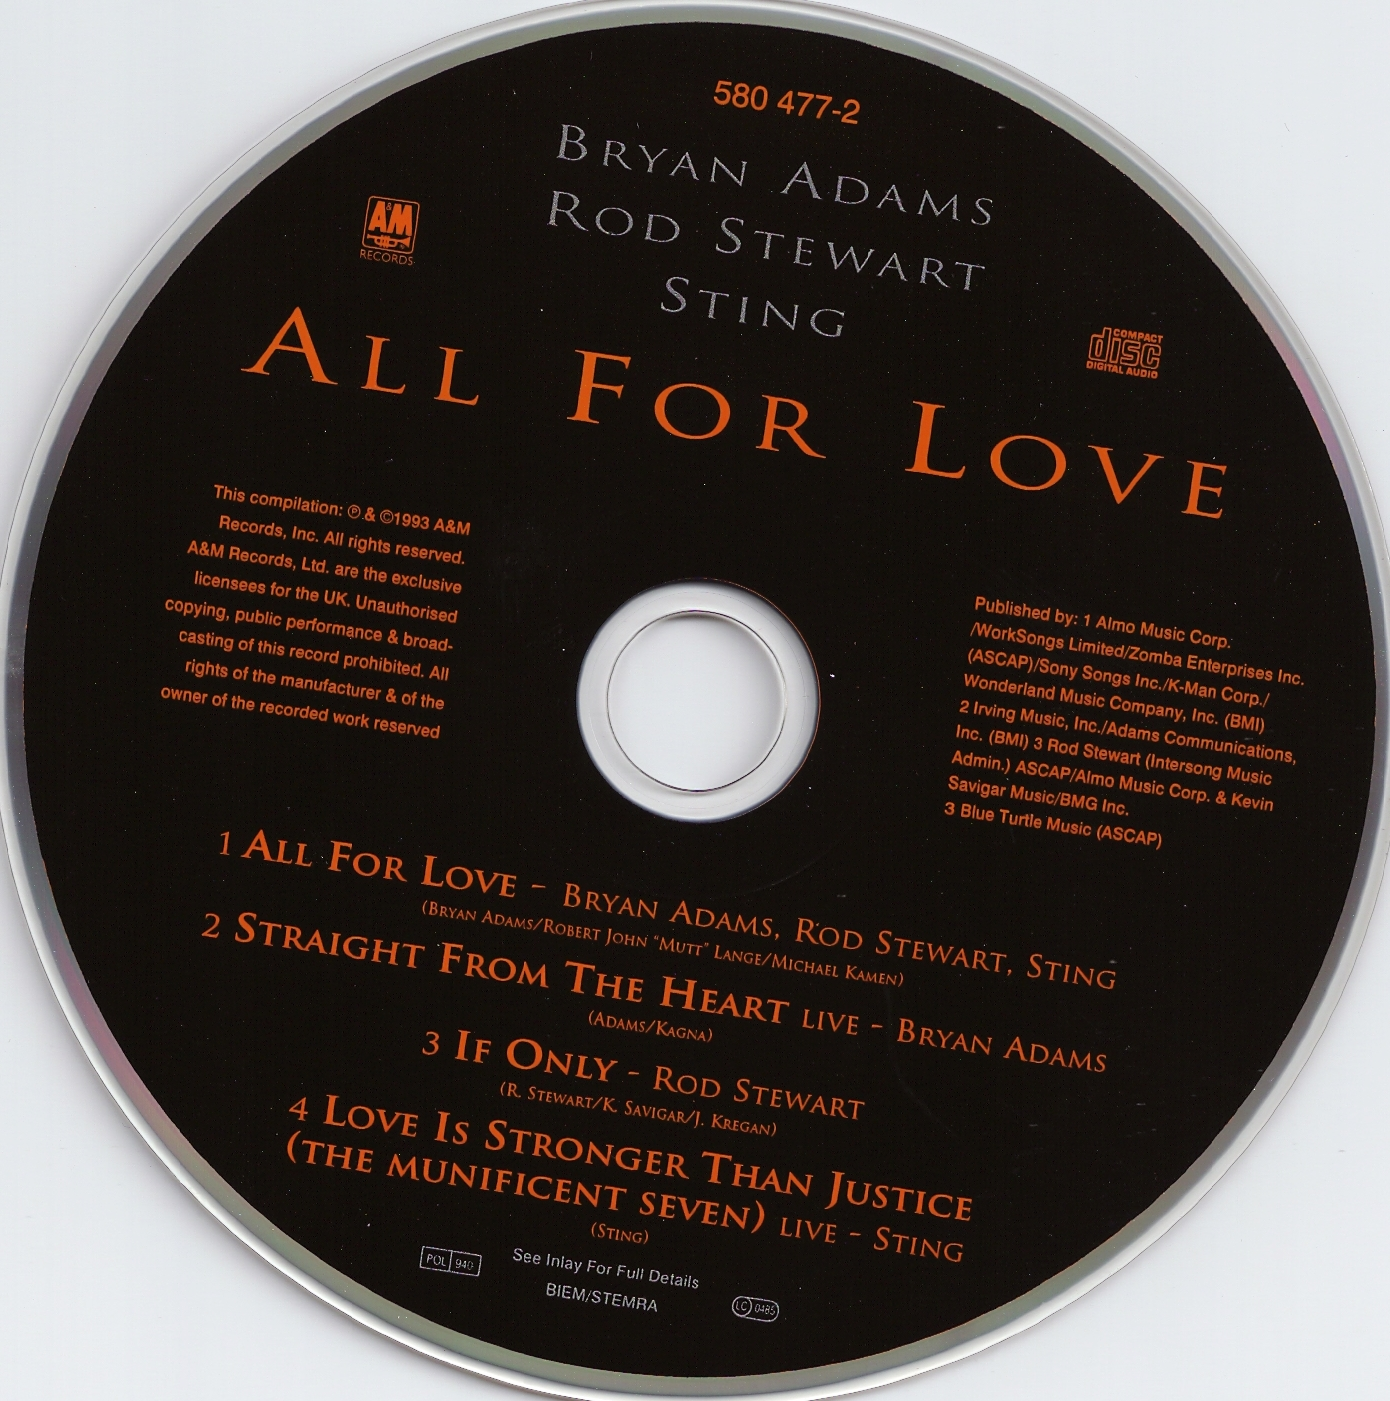 All for Love (song) - Wikipedia